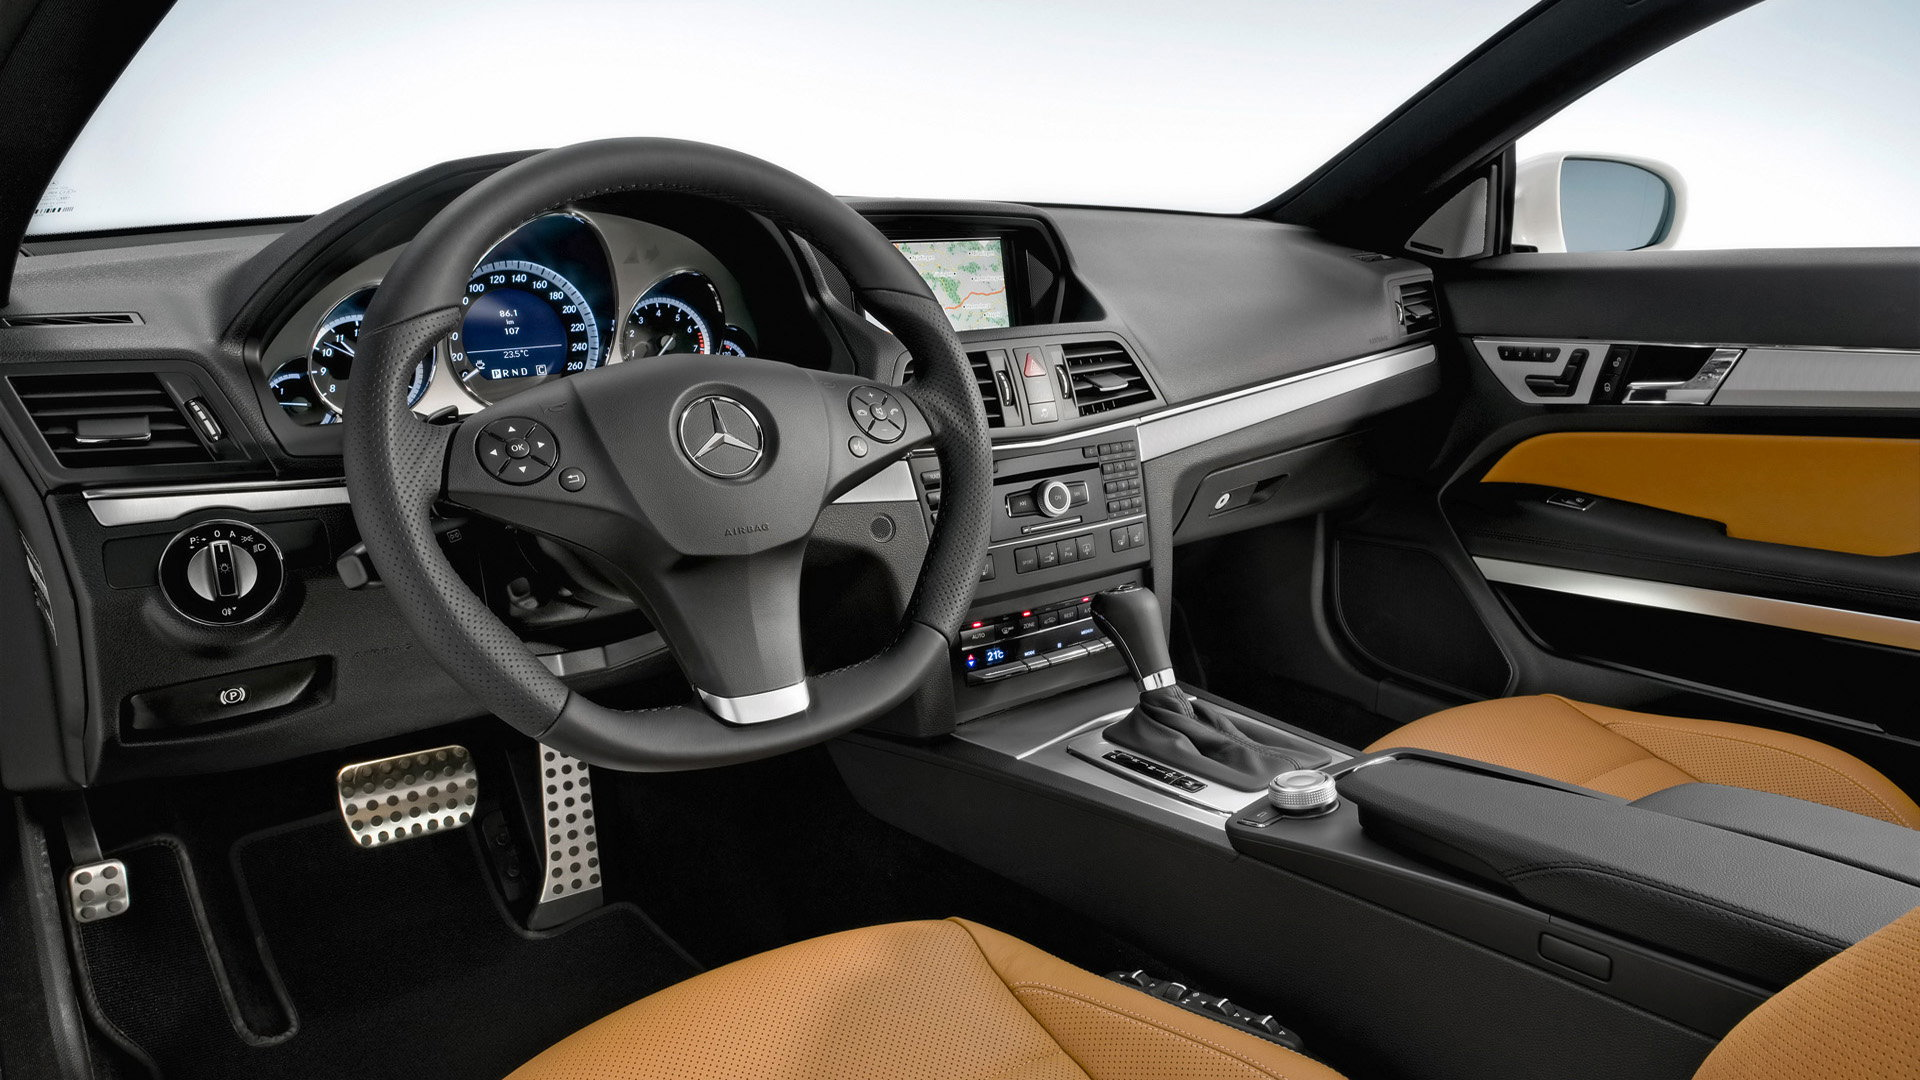 Mercedes-Benz E-Class and E-Class AMG: Why is My Interior ...